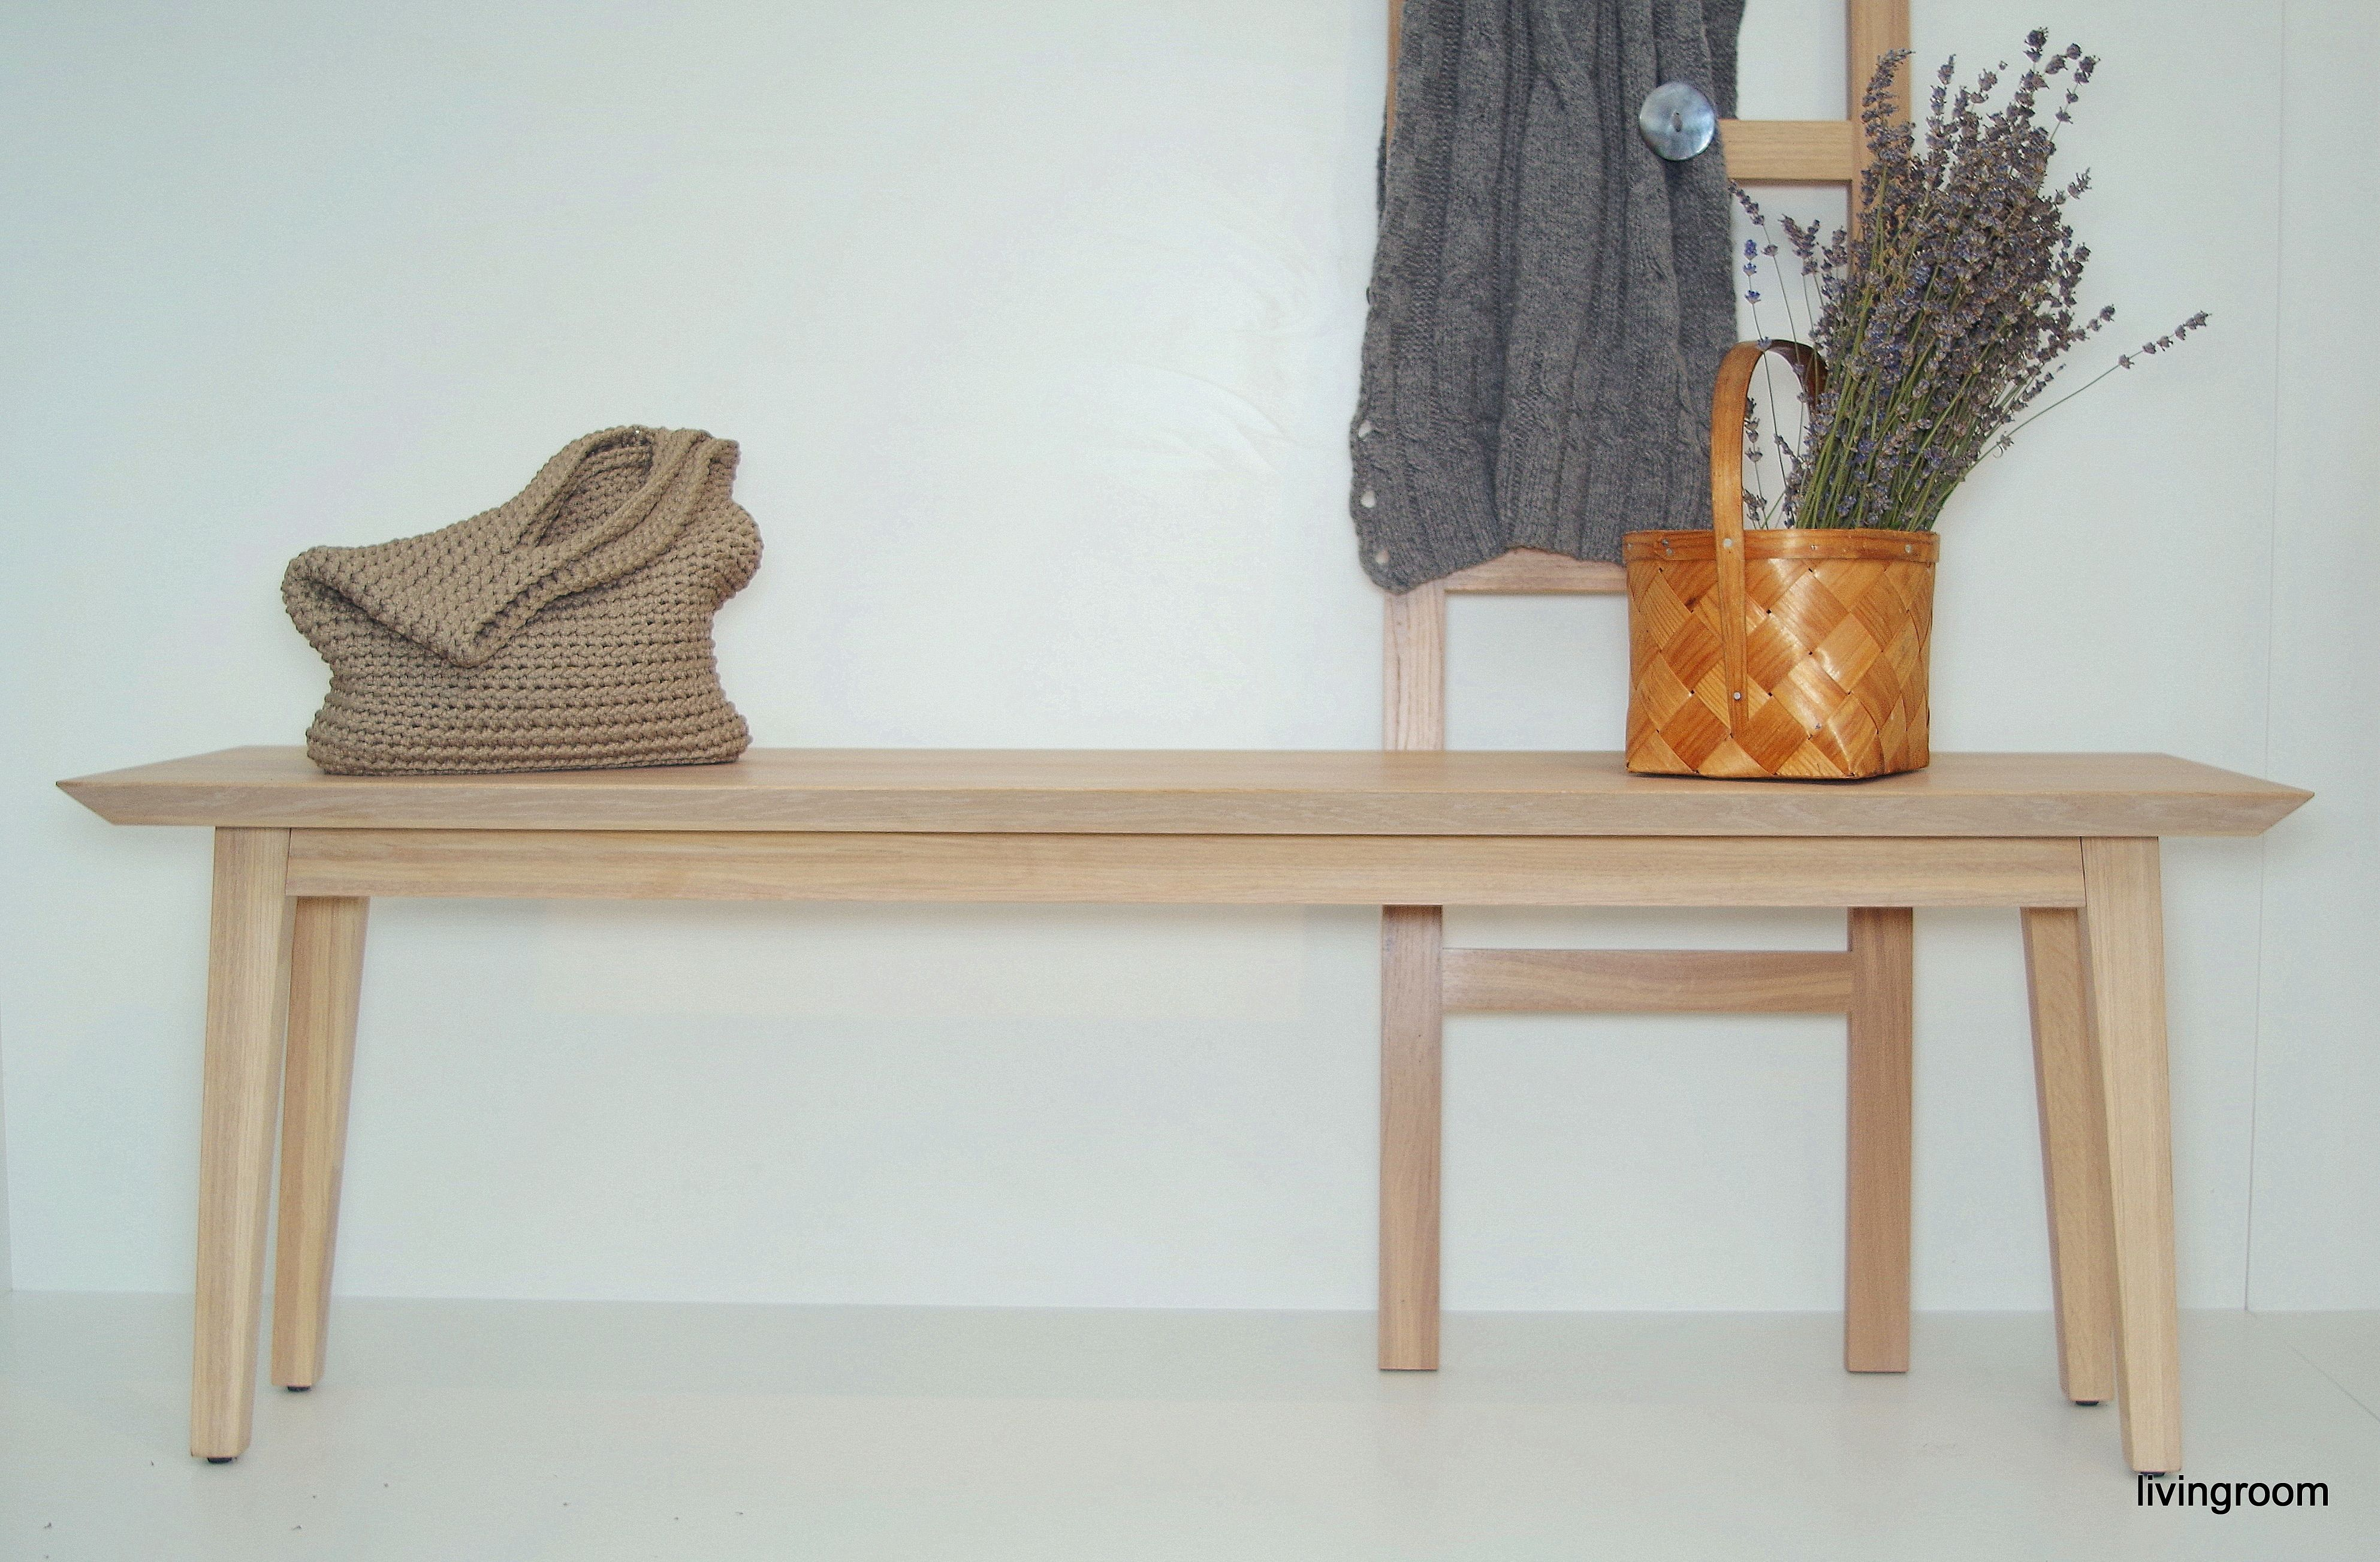 Scandinavian Design Wooden Bench Side Table Wood Mid Century Modern Coffee Table Mid Century Coffee Table